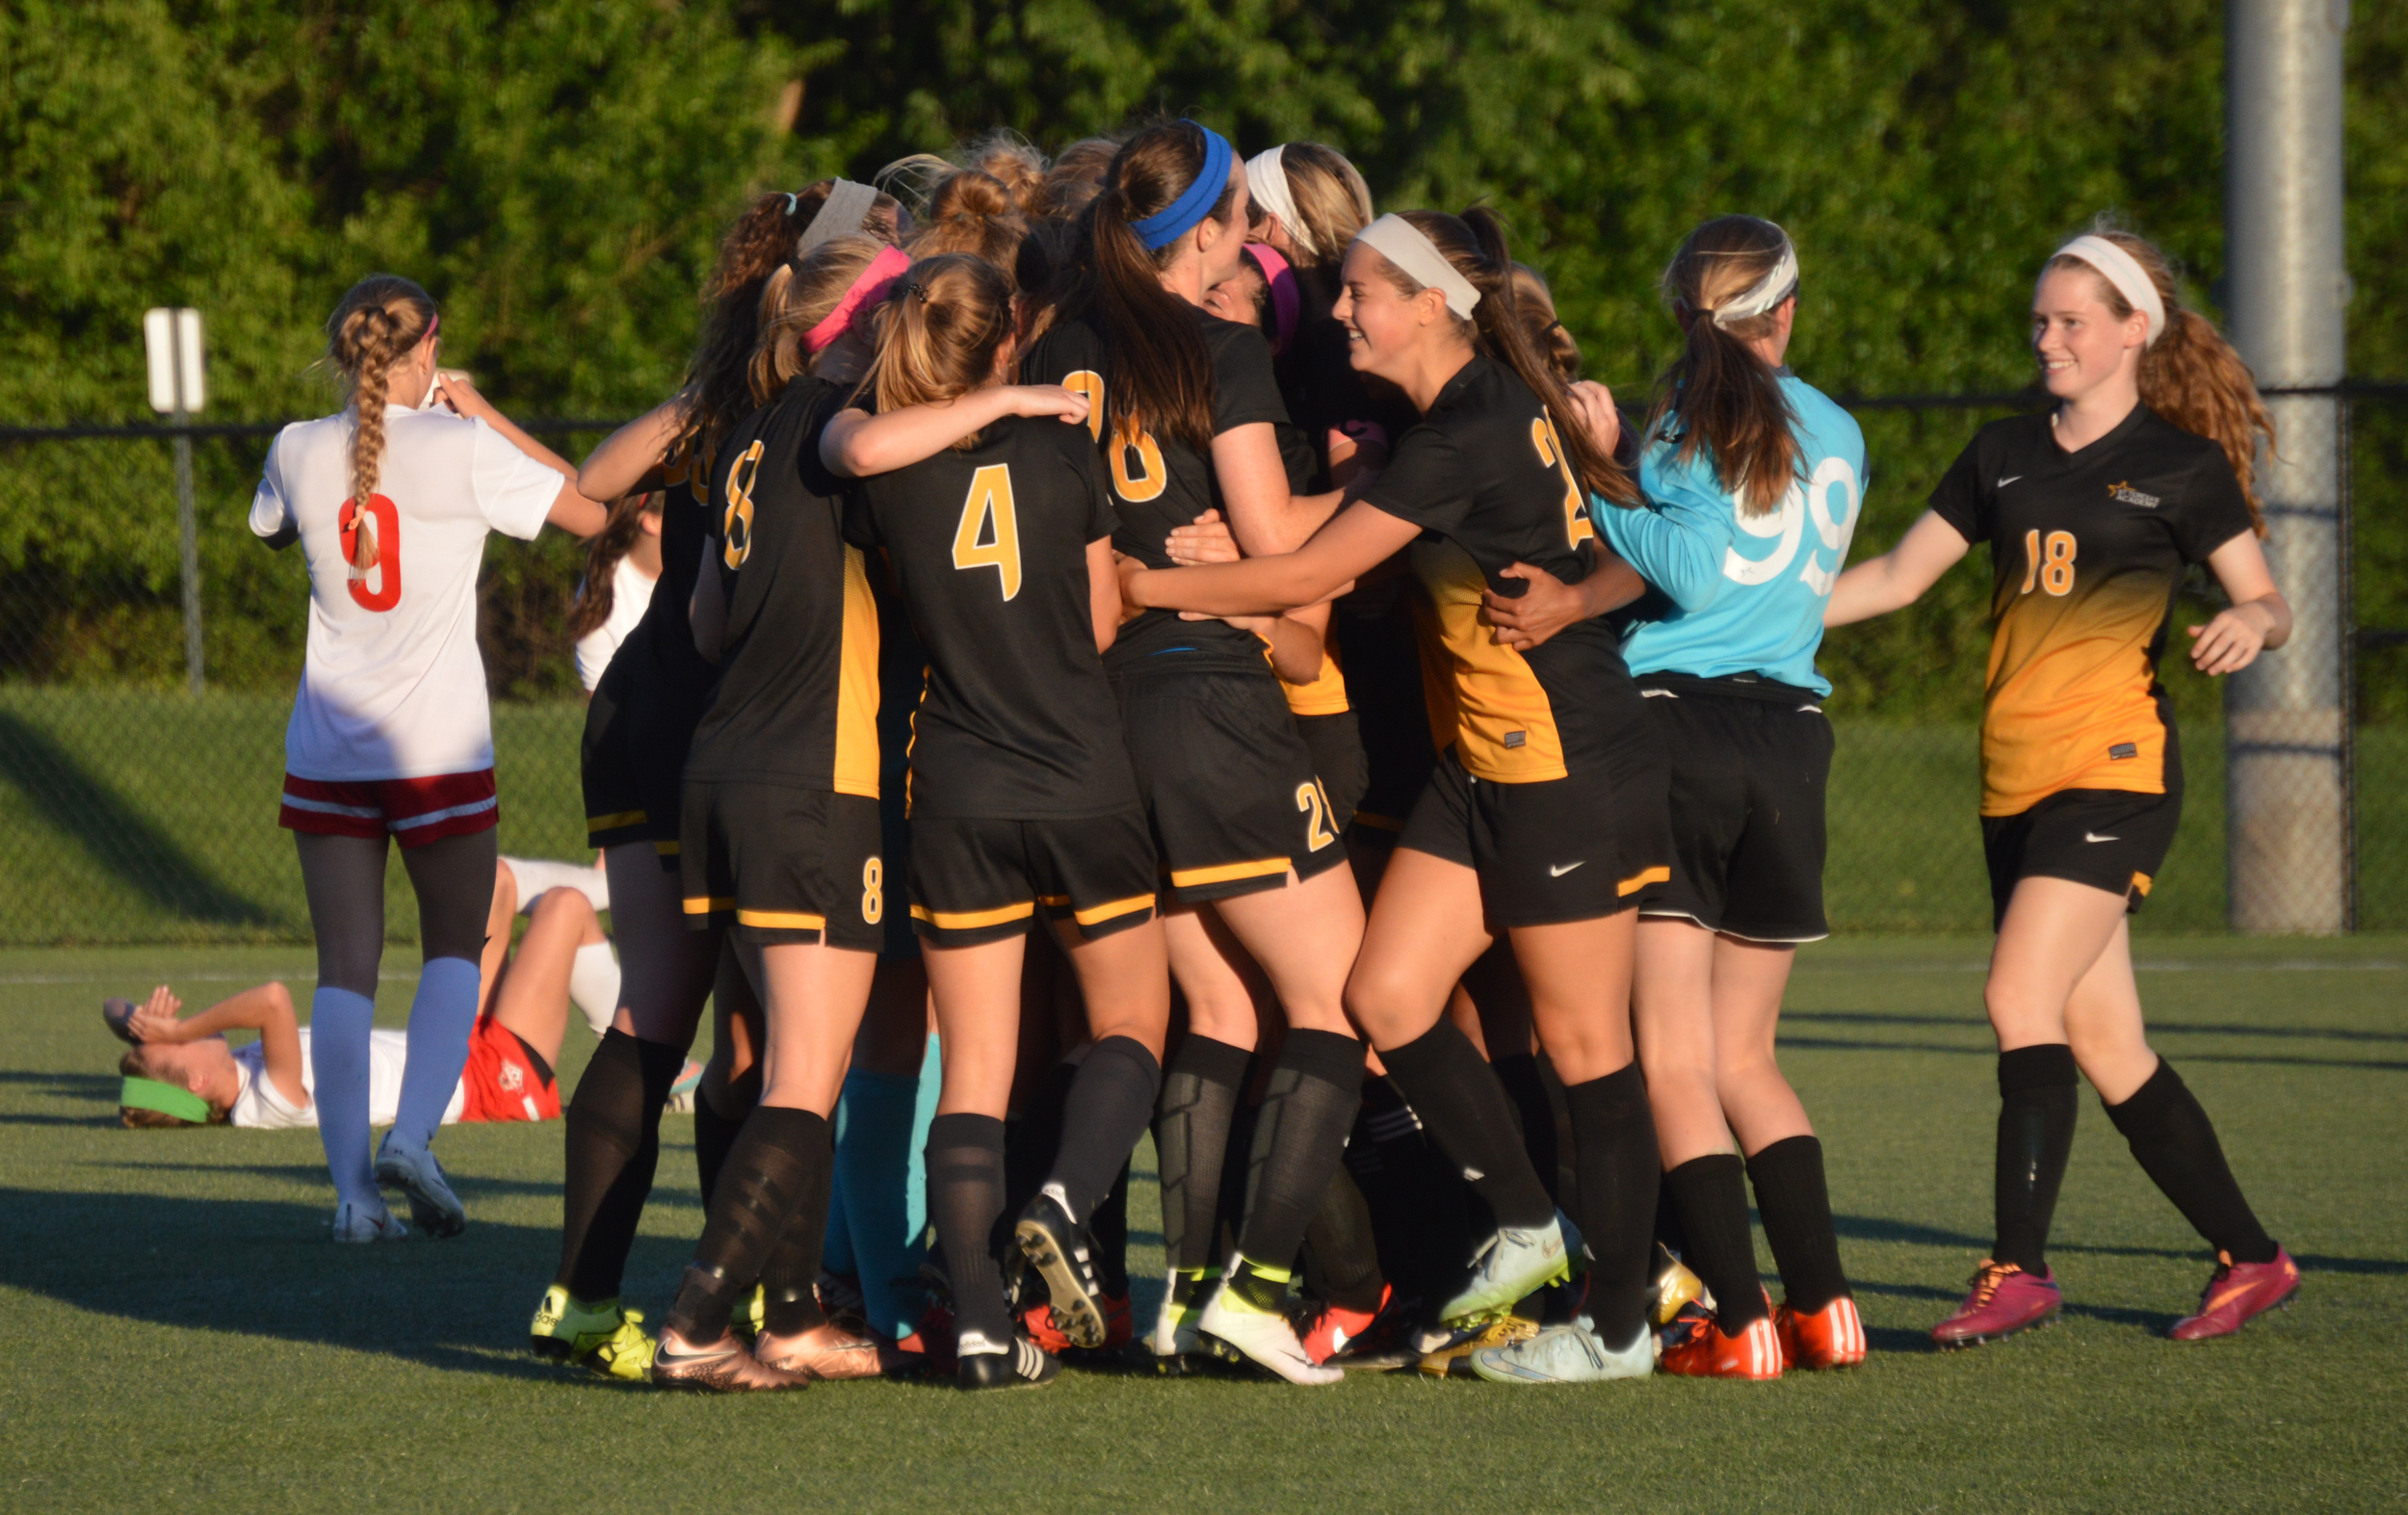 BRENT ROSENAUER/Citizen photo St. Teresa's Academy players celebrate a 2-0 victory in a Class 4 quarterfinal Saturday, May 28 at Park Hill District Soccer Complex in Riverside, Mo. Park Hill junior Jenna Winebrenner, back left, lays on the turf while senior midfielder Bella Catano covers her face with her jersey.